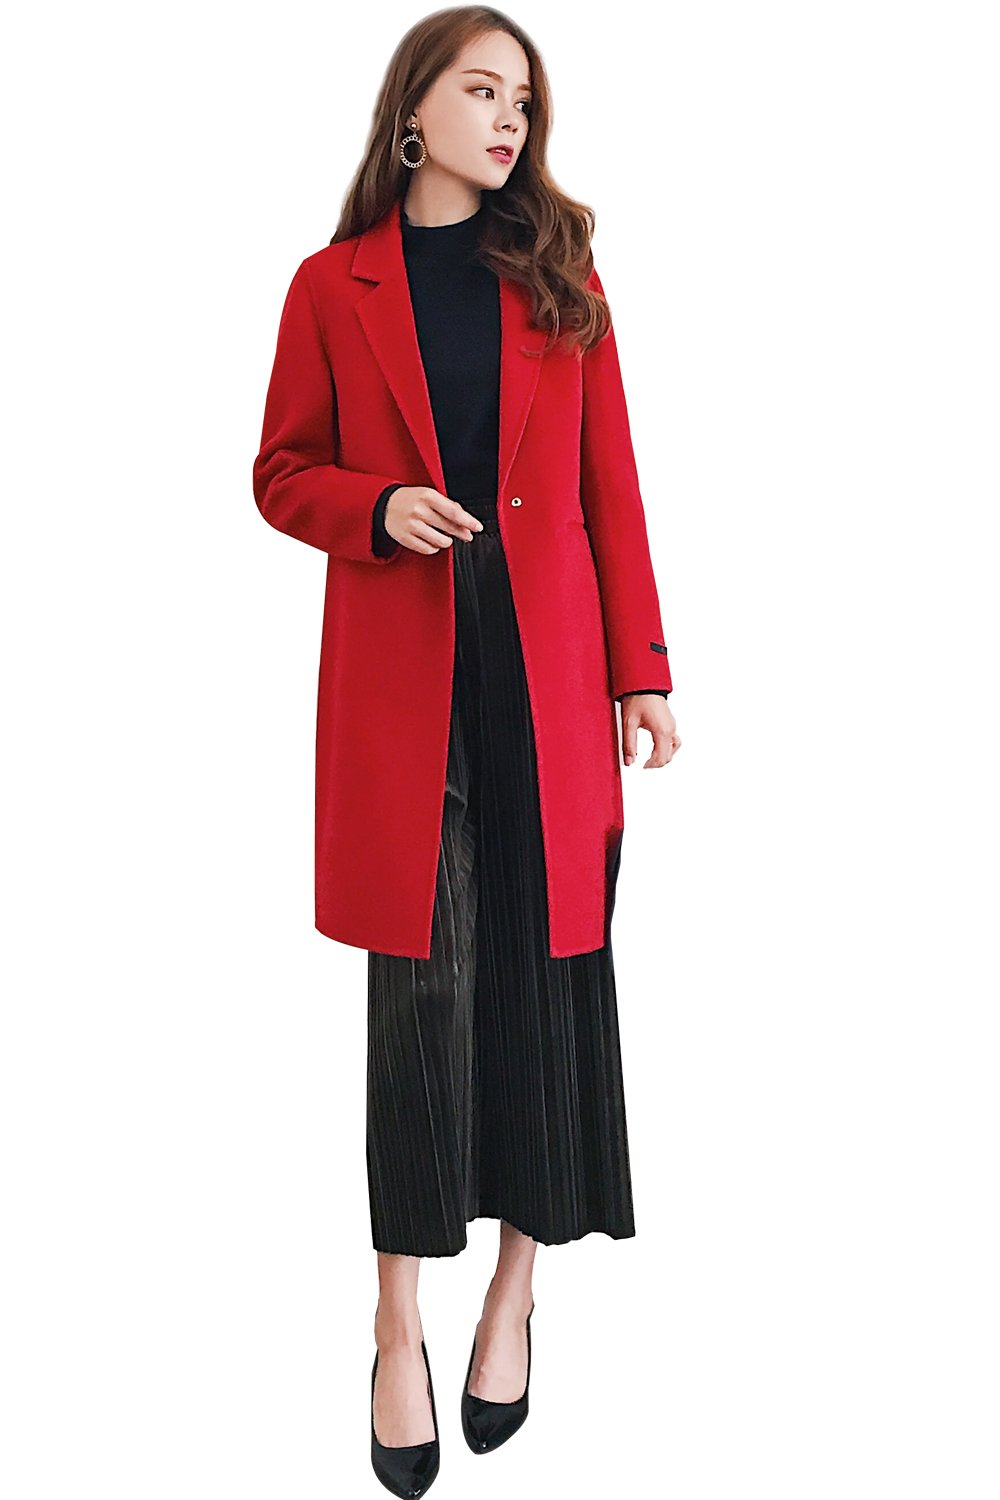 CG Winter Warm Wool Coats for Women Doubles-Sided Wool Elegant Design Suit for Any Occasion G0057 (XL, Red)